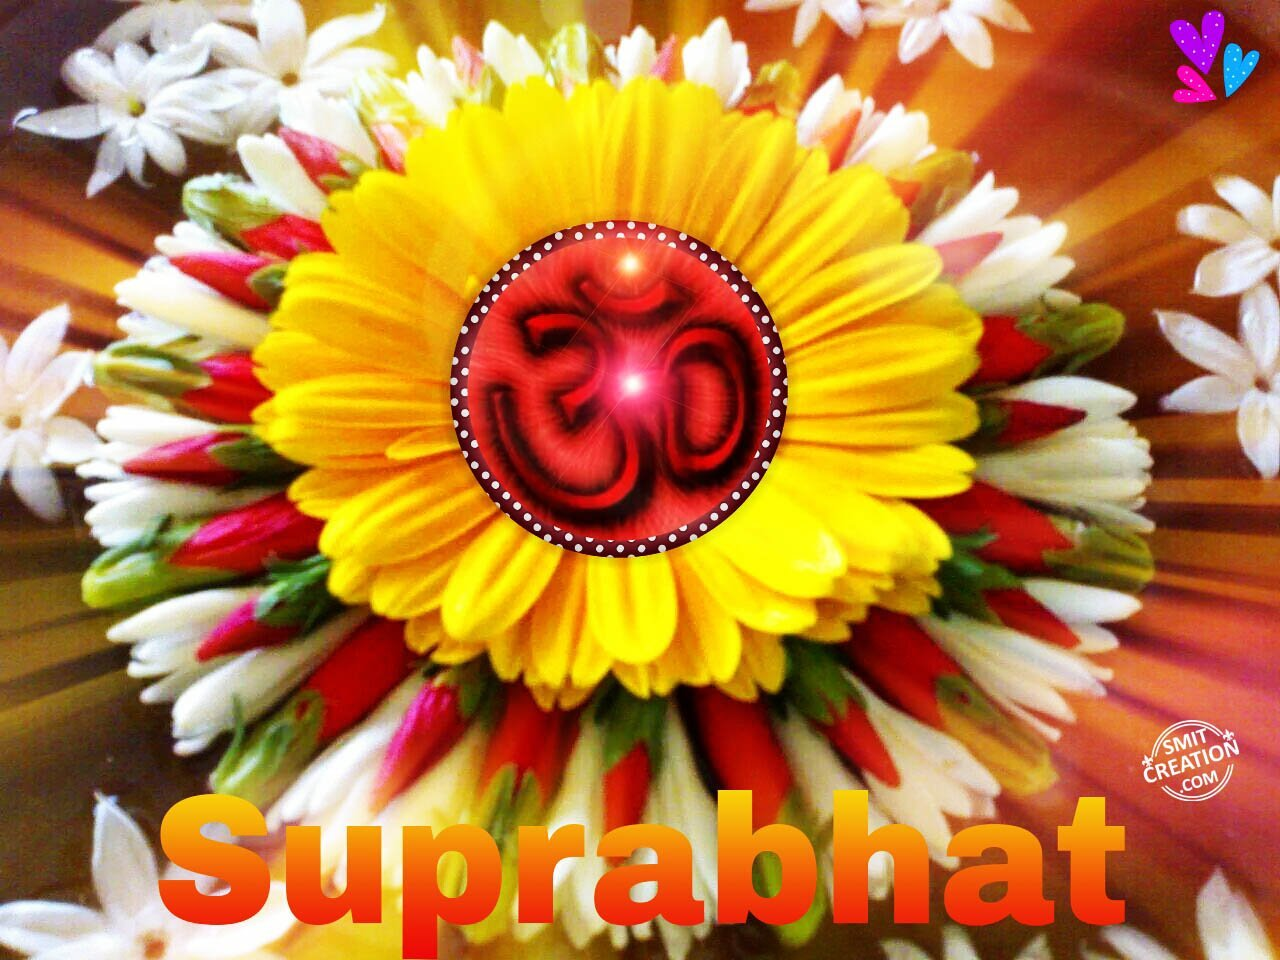 Lord Suprabhat photos full hd